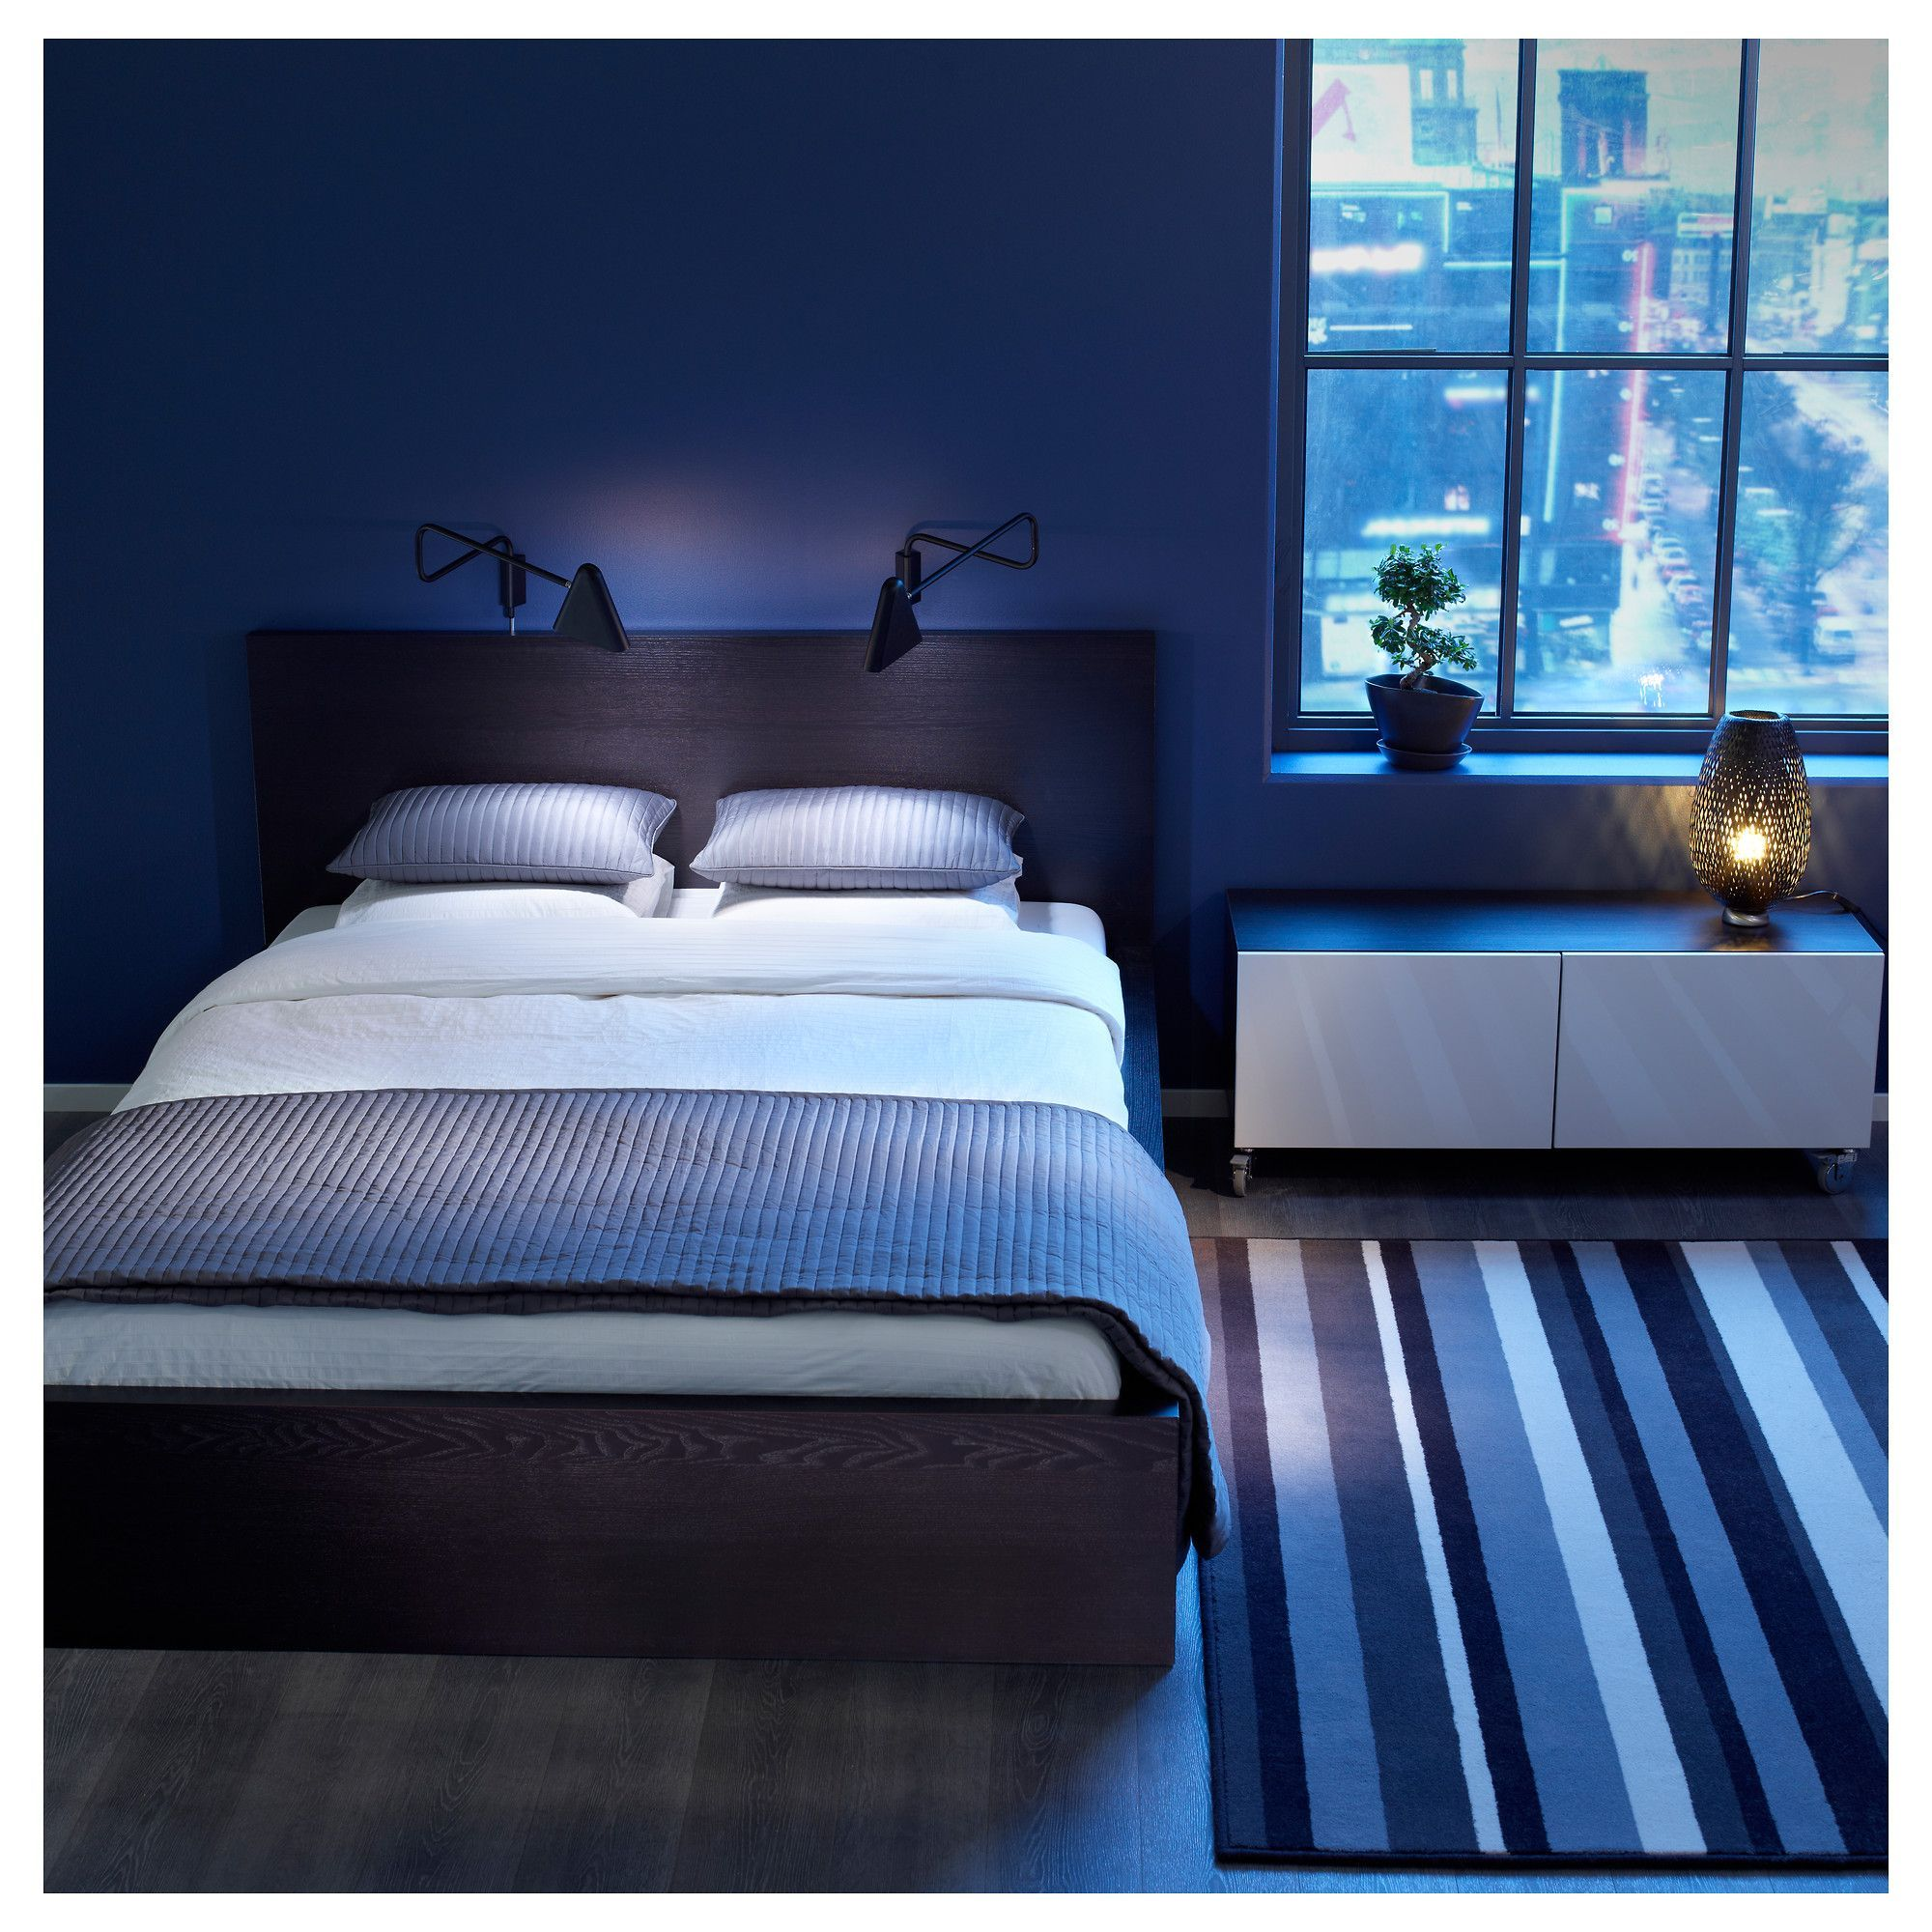 Bedroom paint ideas blue and brown - Best Blue Themed Bedroom Decorations With Dark Wooden Platform Bed Plus White Bedding Plus Brown Wooden Headbaord Plus White Cushions And Striped Carpet